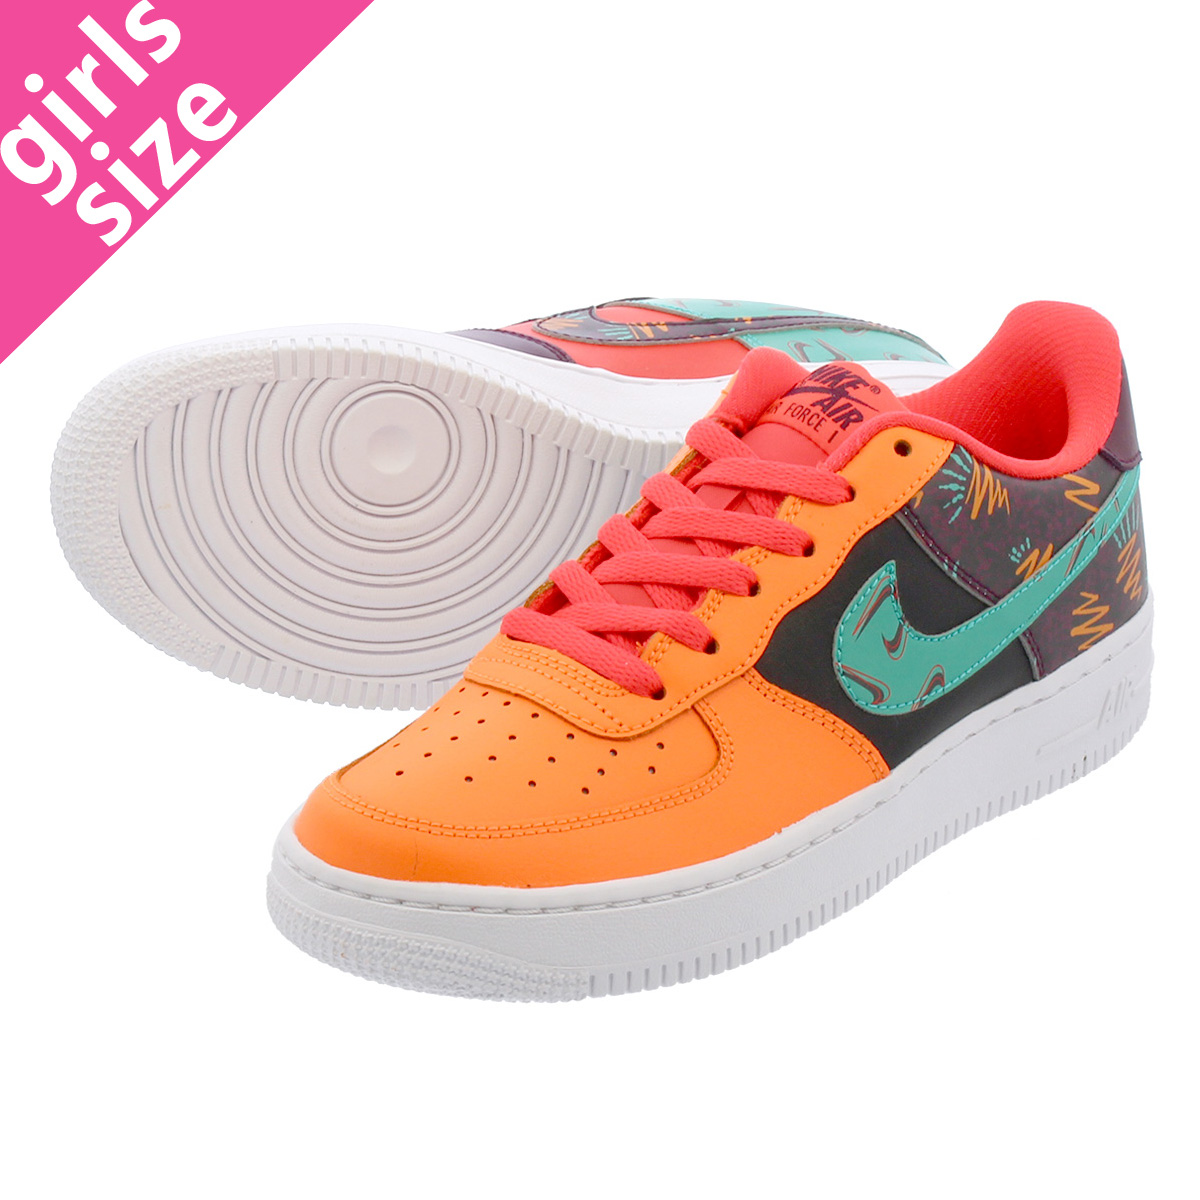 【大人気の女の子サイズ♪】 NIKE AIR FORCE 1 BG LOW 【WHAT THE 90S】 ナイキ エア フォース 1 BG ロー TOTAL ORANGE/BLACK/HYPER JADE/BORDEAUX at3407-600